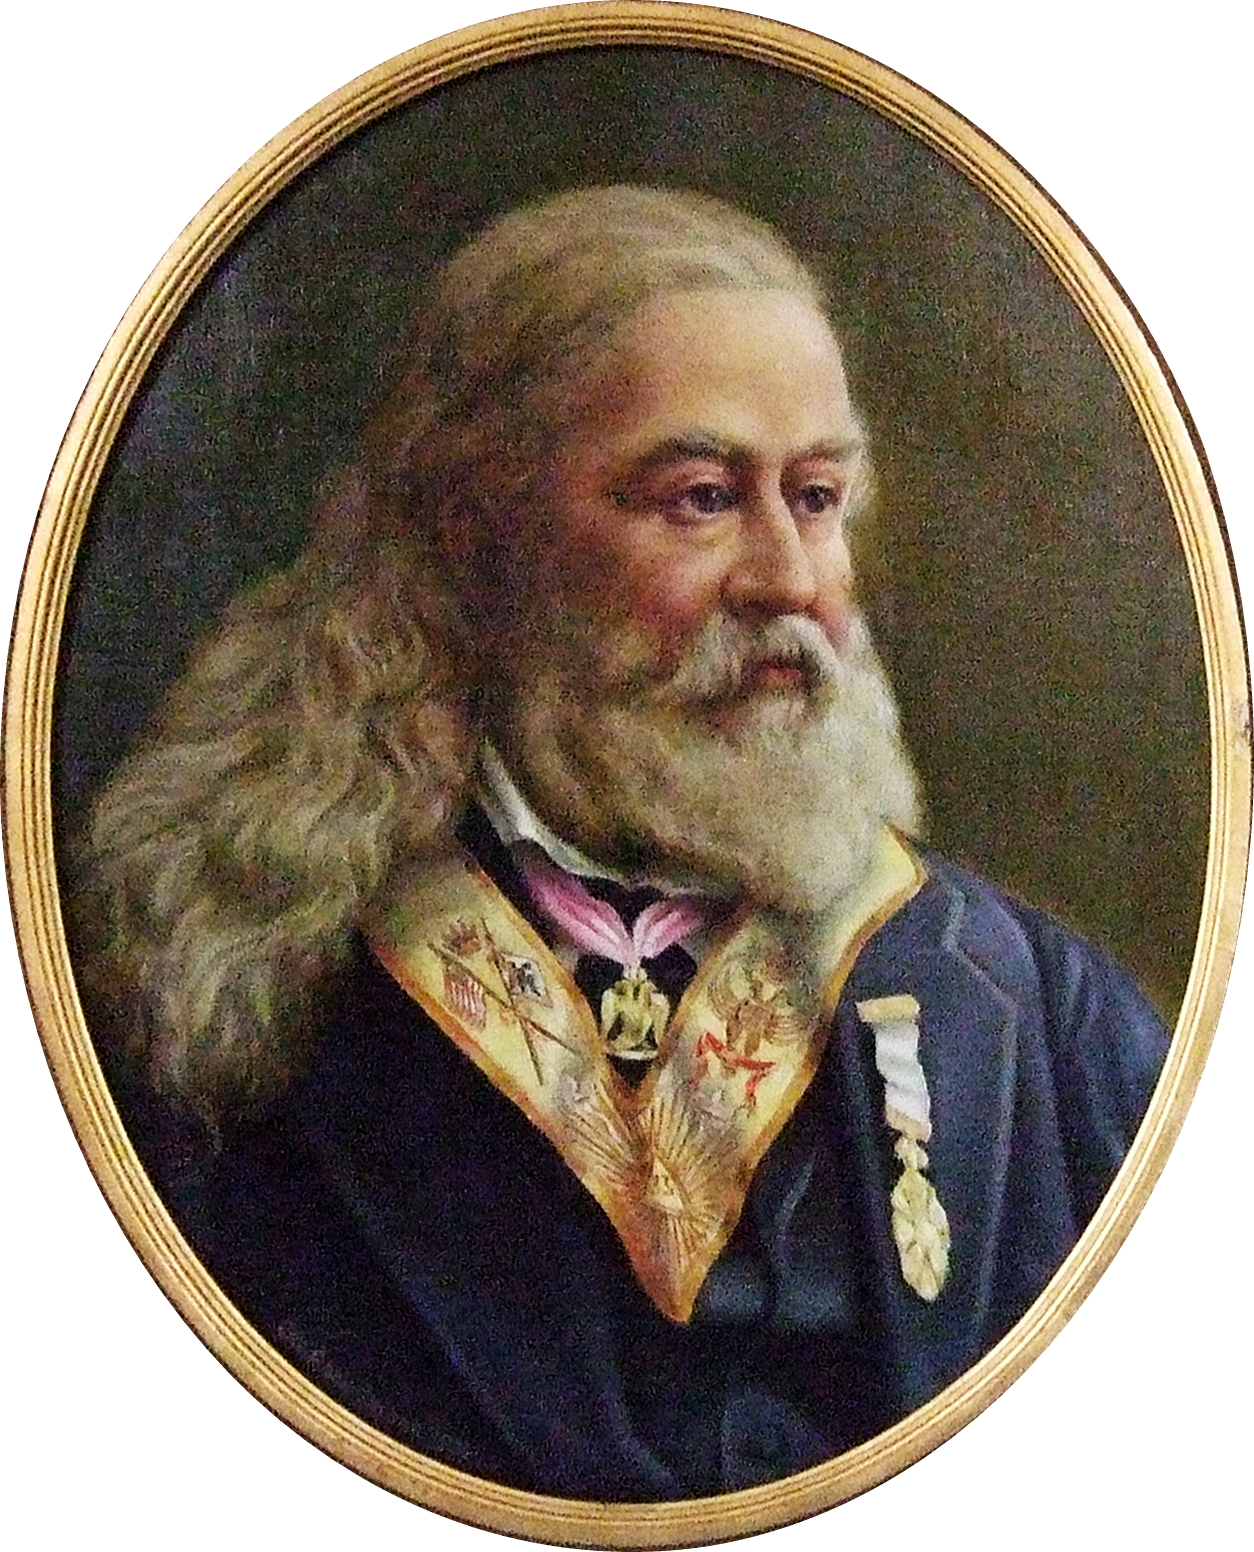 Albert Pike cropped.jpg